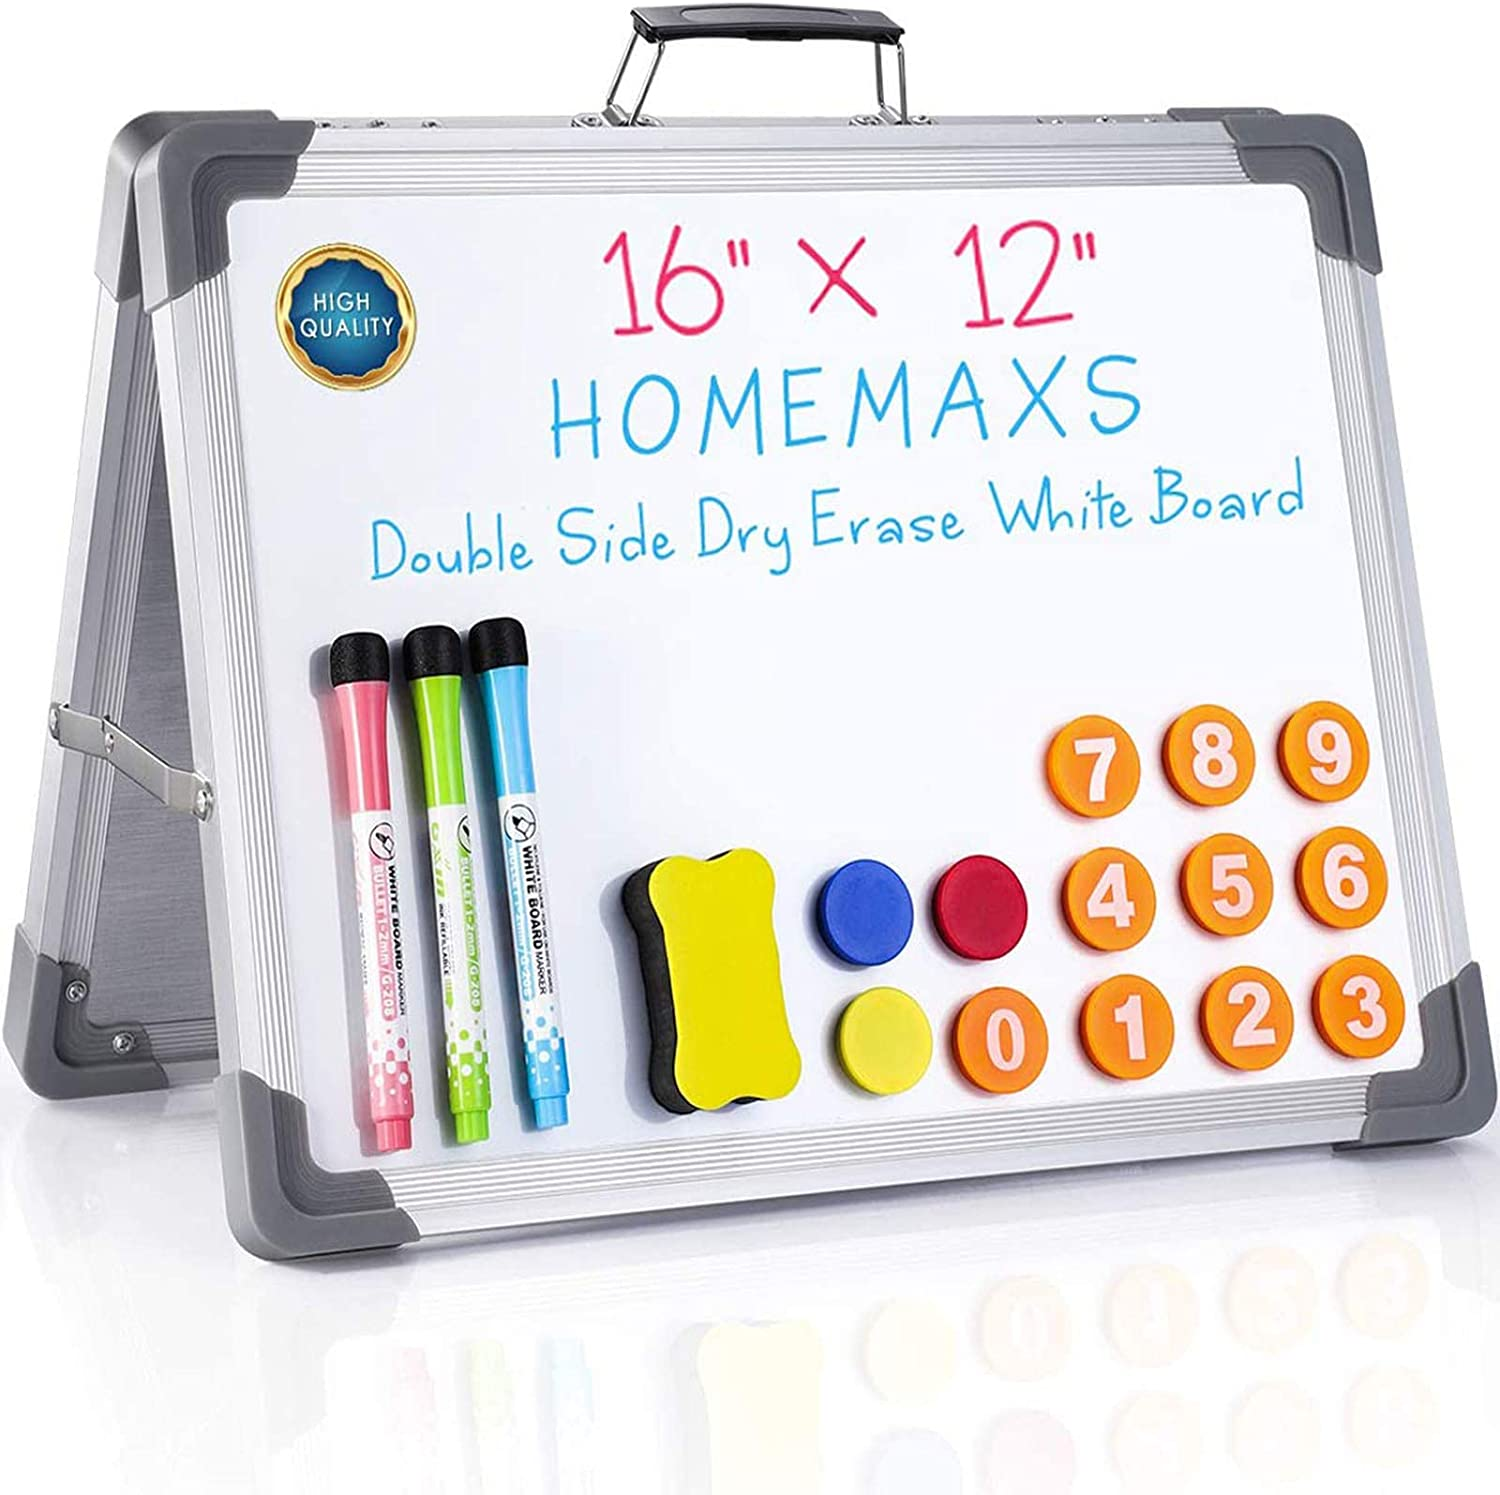 Magnetic Desktop Portable Dry Erase Board, Personal Message Whiteboard, for Kids Drawing, Kitchen Grocery List